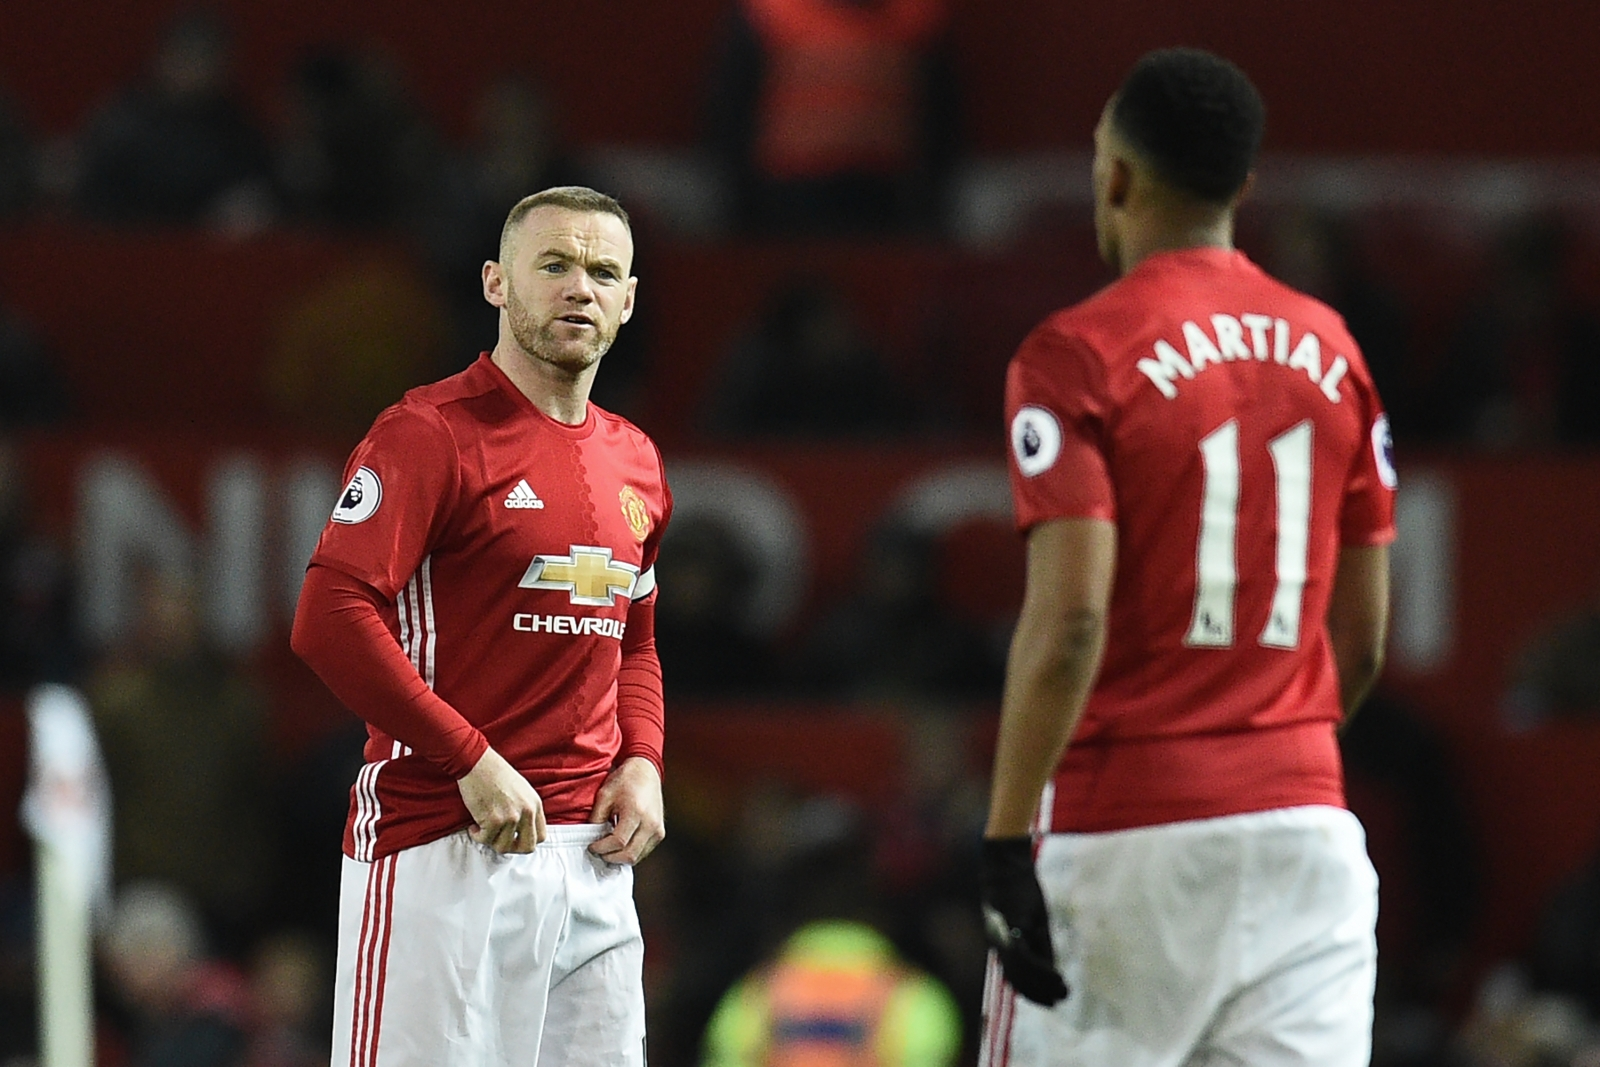 Manchester United duo Wayne Rooney and Anthony Martial ruled out